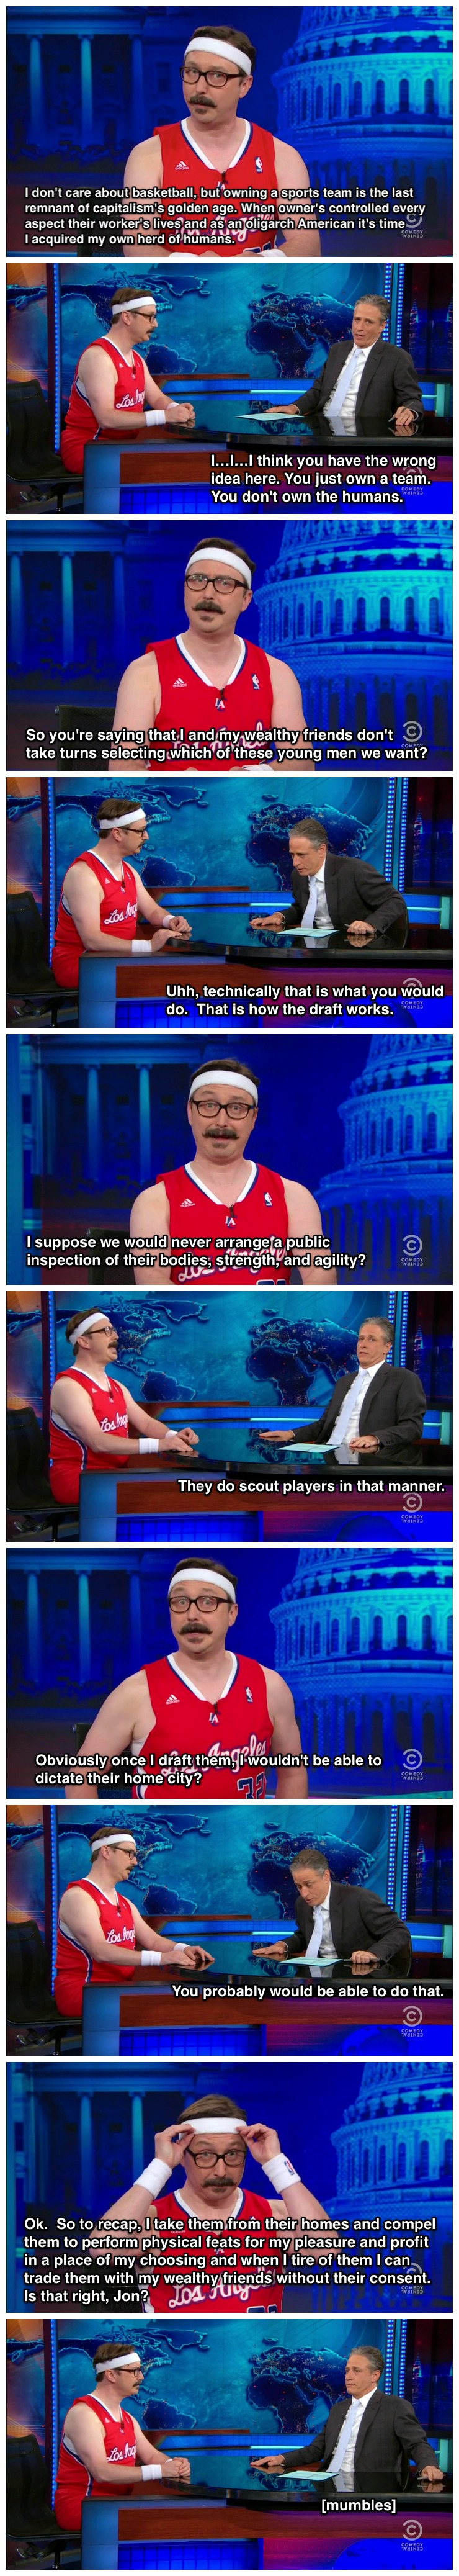 John Hodgman explains to Jon Stewart why he wants to but the LA Clippers - Imgur